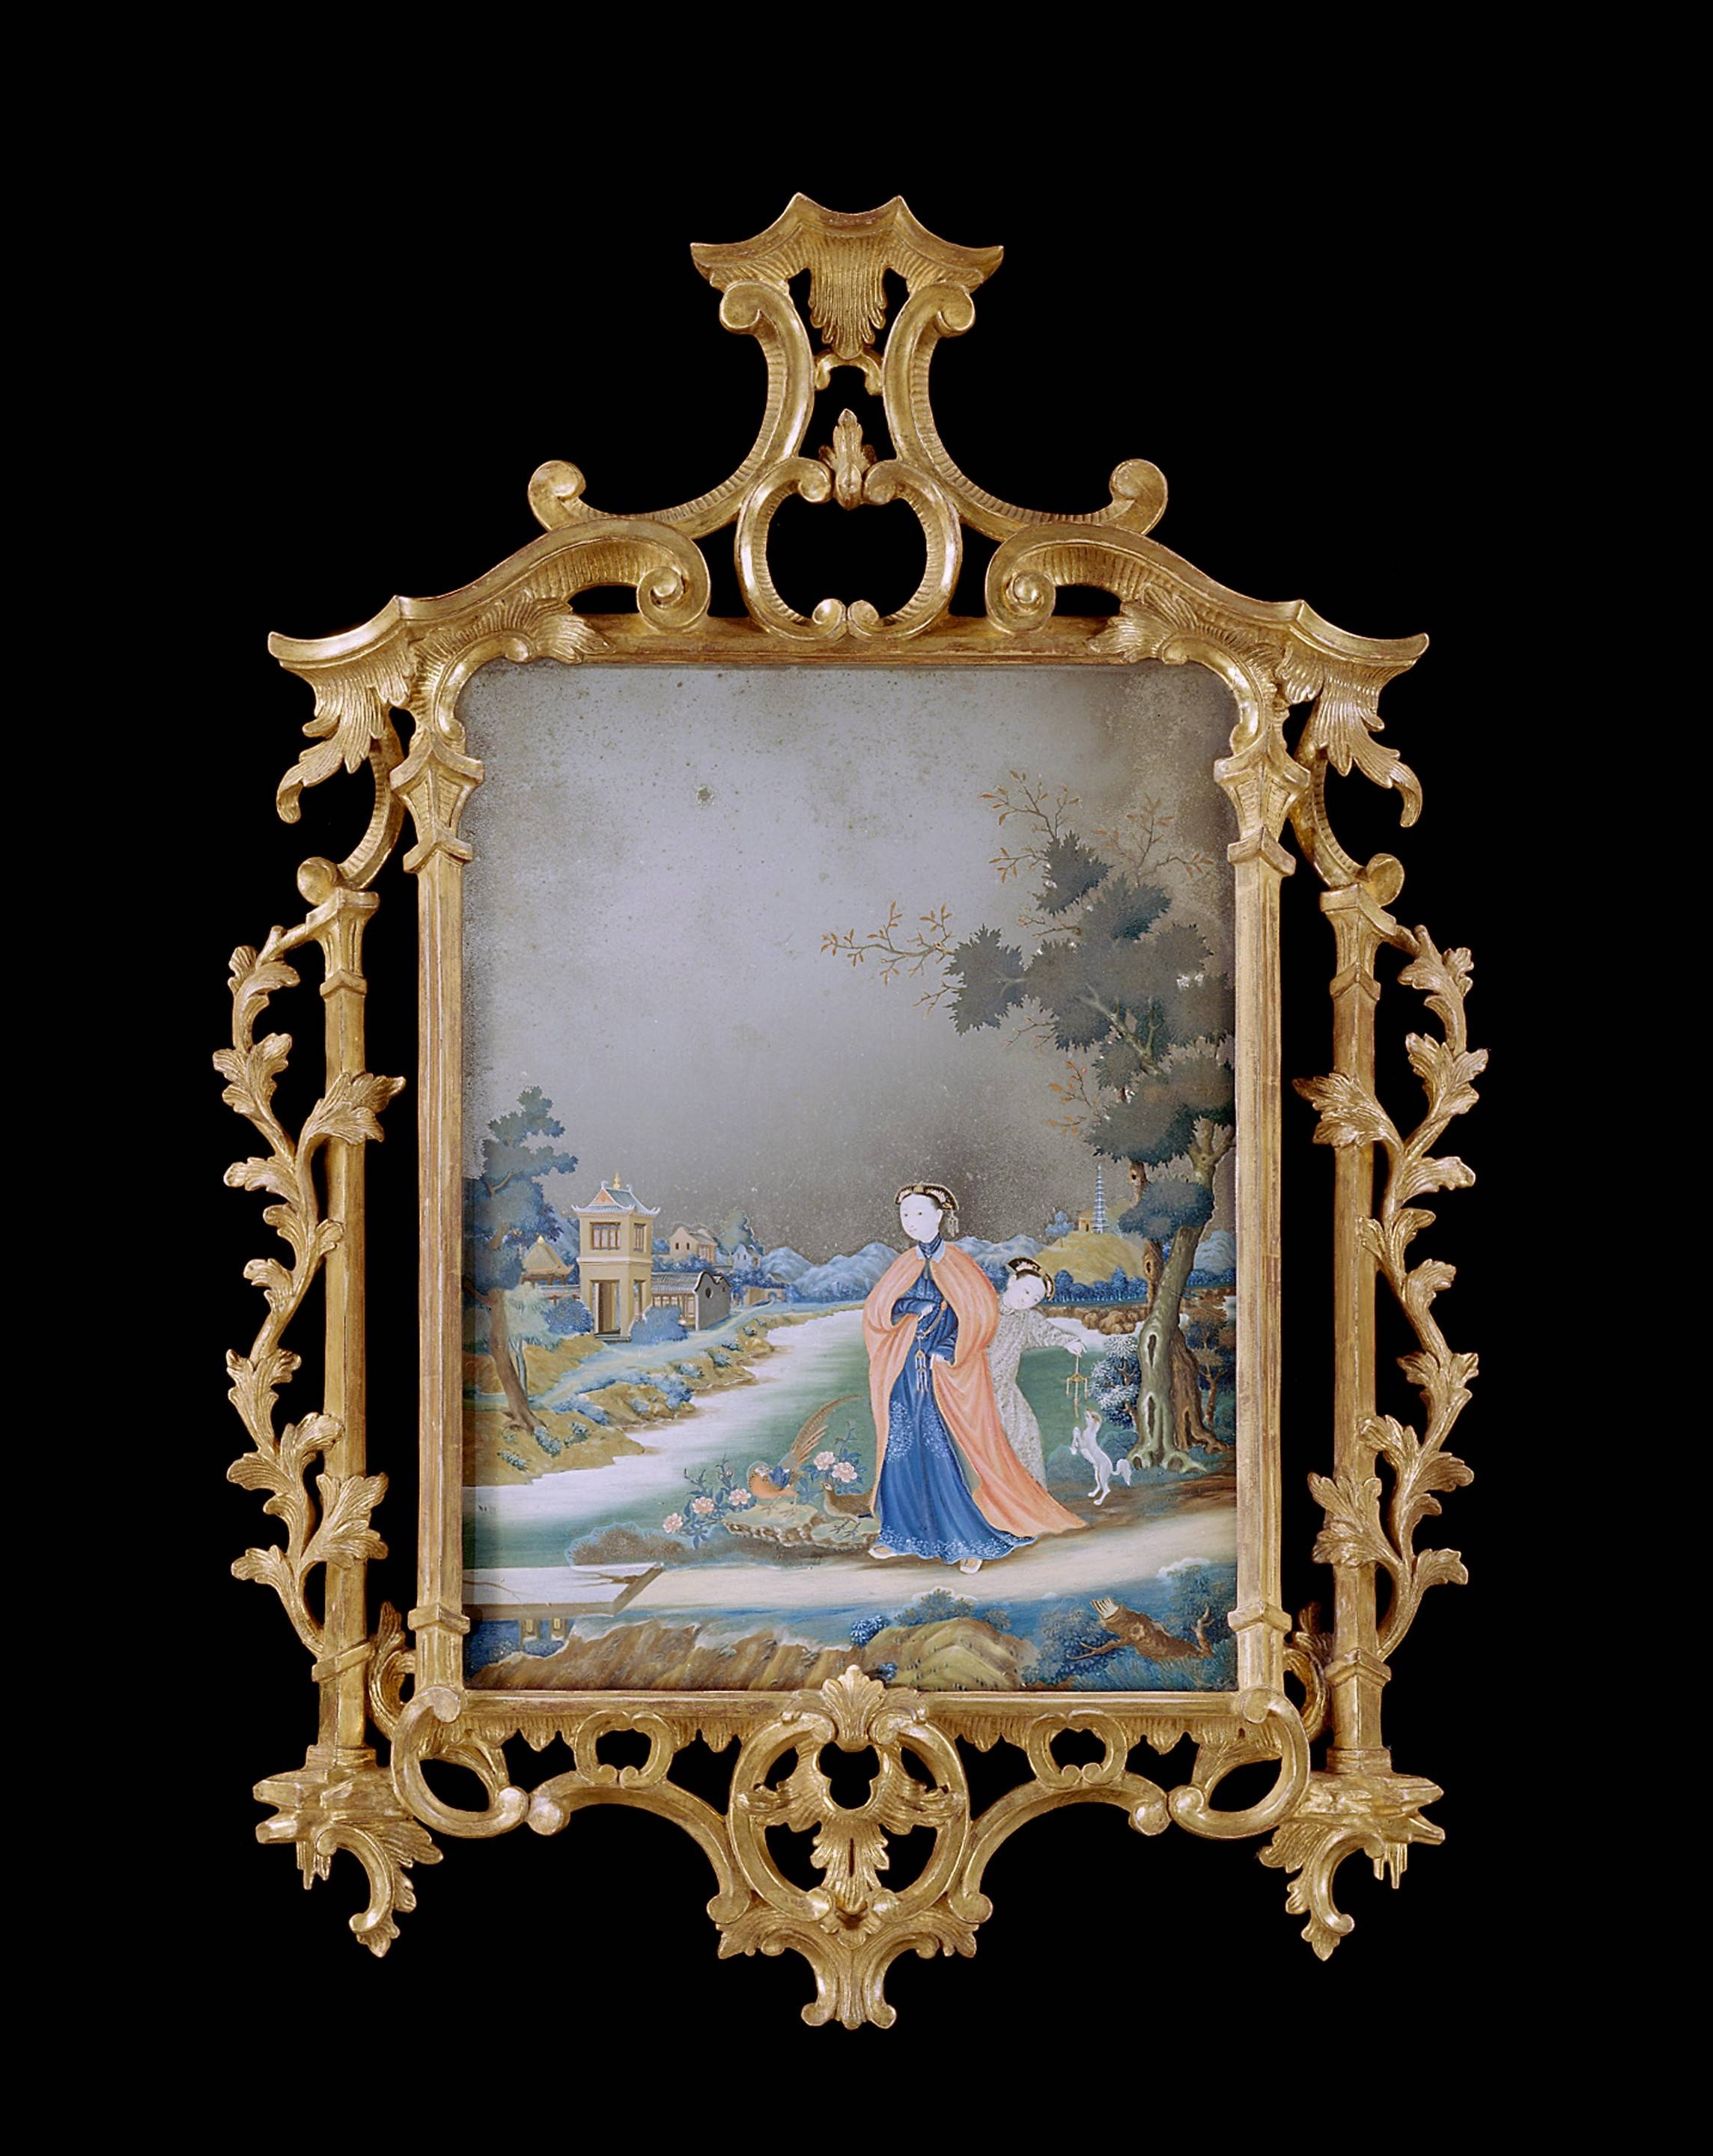 Chinese Paintings - The Uk's Premier Antiques Portal - Online with regard to Chinese Mirrors (Image 14 of 25)